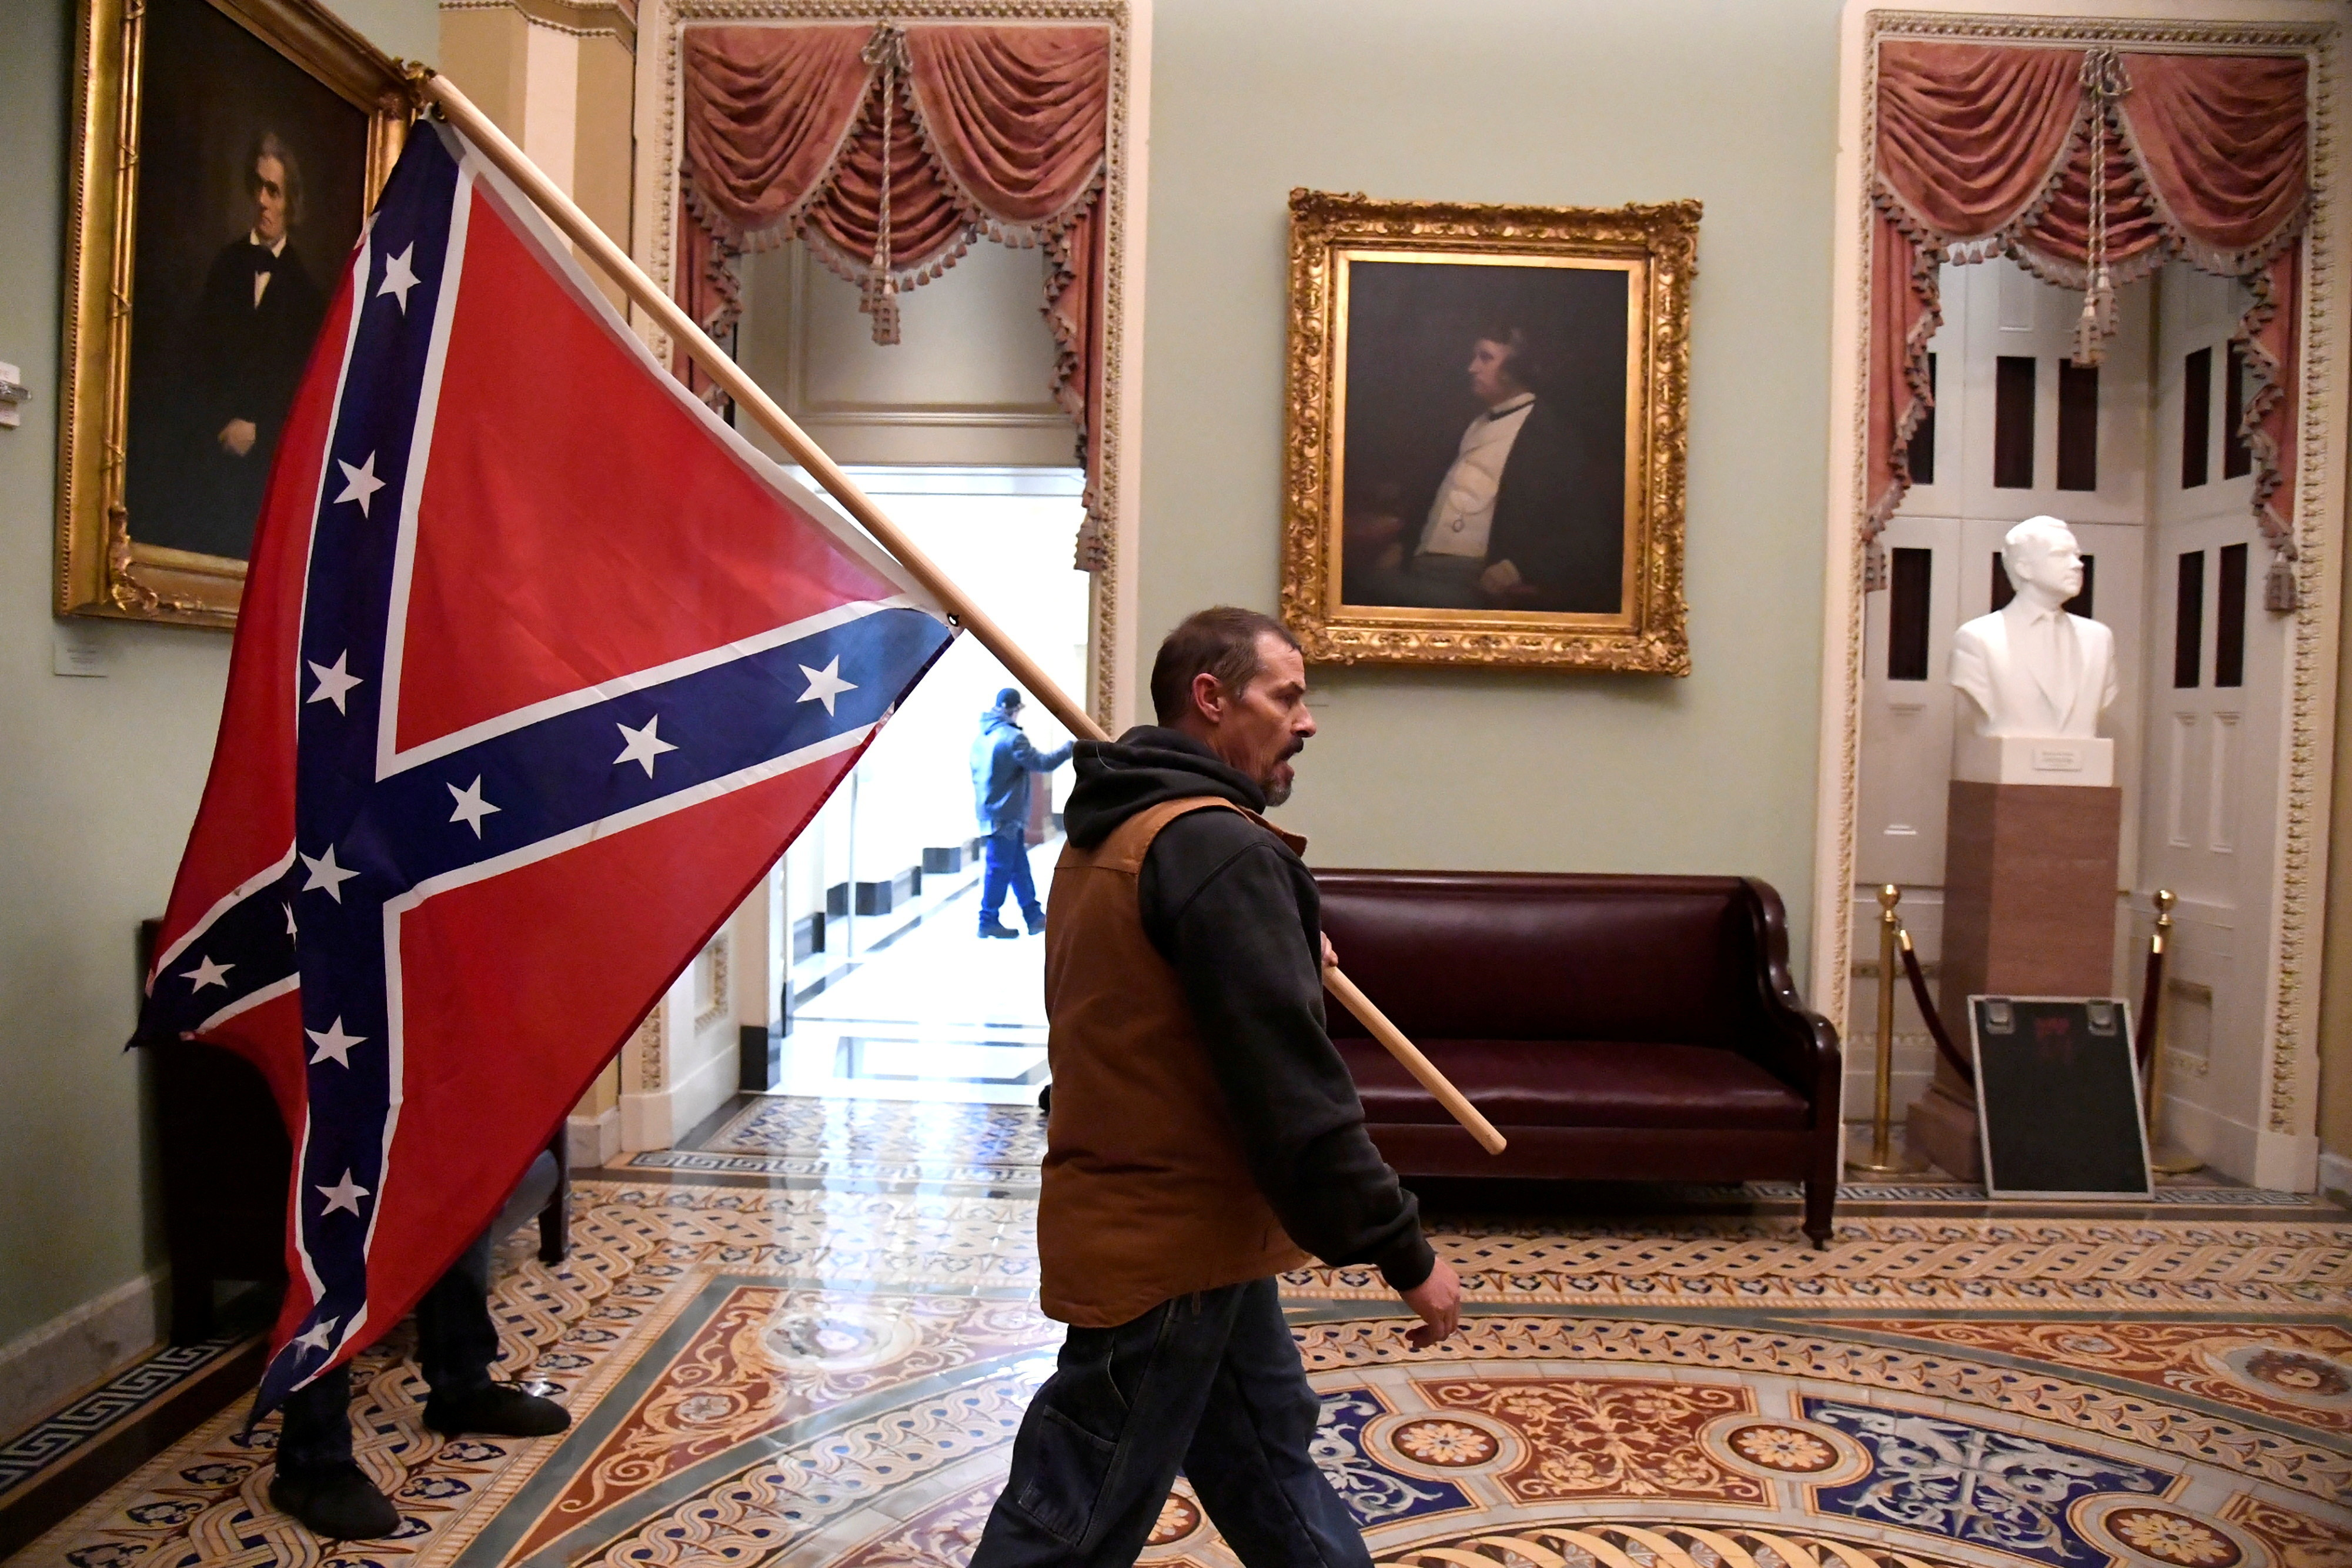 A supporter of President Donald Trump carries a Confederate battle flag on the second floor of the U.S. Capitol near the entrance to the Senate after breaching security defenses, in Washington, U.S., January 6, 2021. A portrait of abolitionist senator Charles Sumner of Massachusetts, who was savagely beaten on the Senate floor after delivering a speech criticizing slavery in 1856, hangs above the couch.        REUTERS/Mike Theiler     TPX IMAGES OF THE DAY - RC2K2L9T6BWB